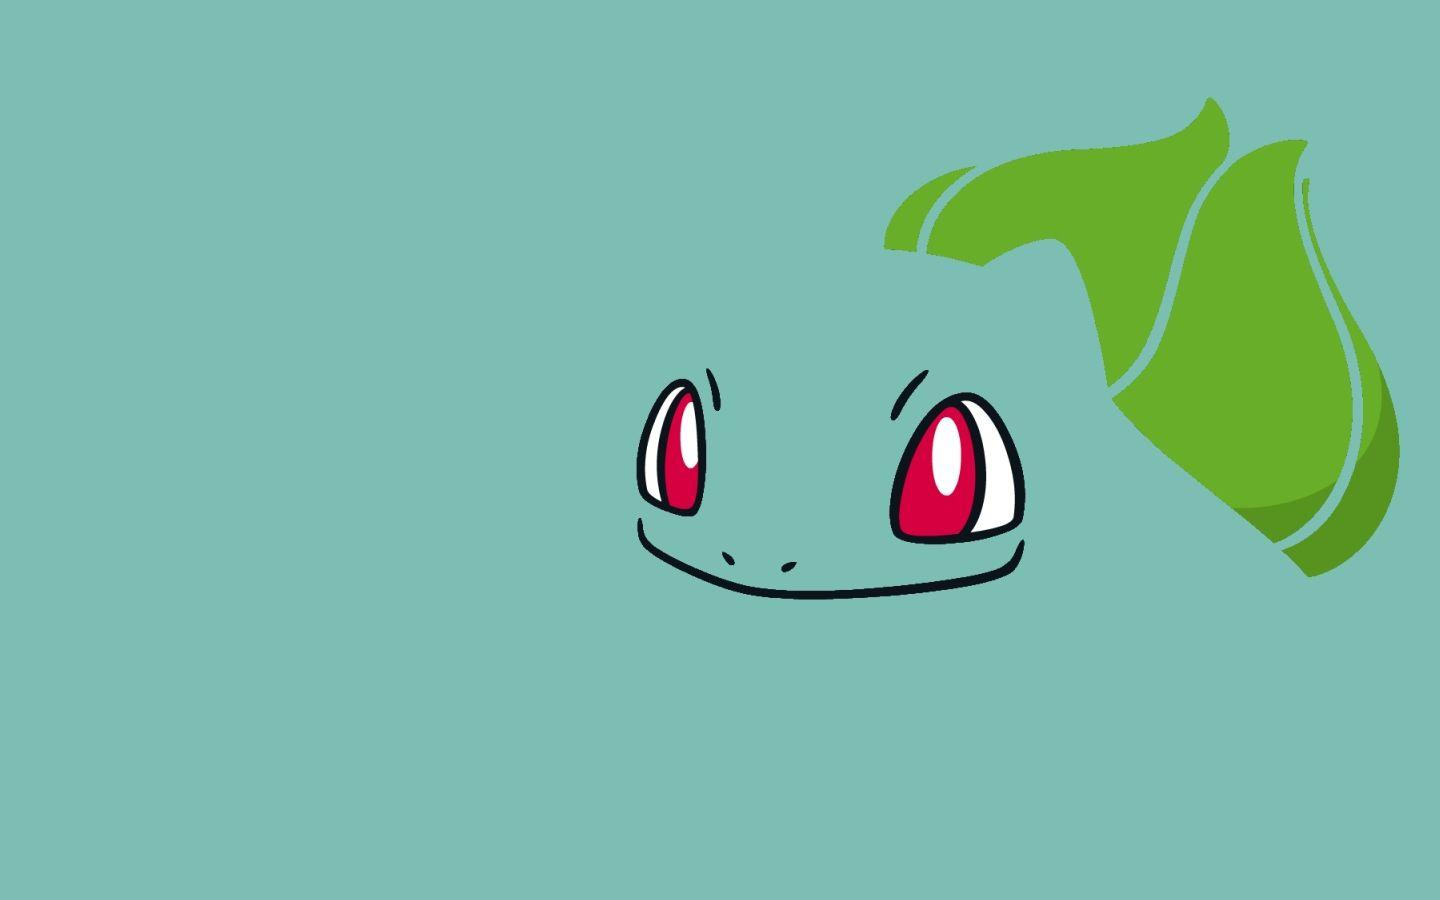 Bulbasaur wallpaper by TheDMWarrior on DeviantArt